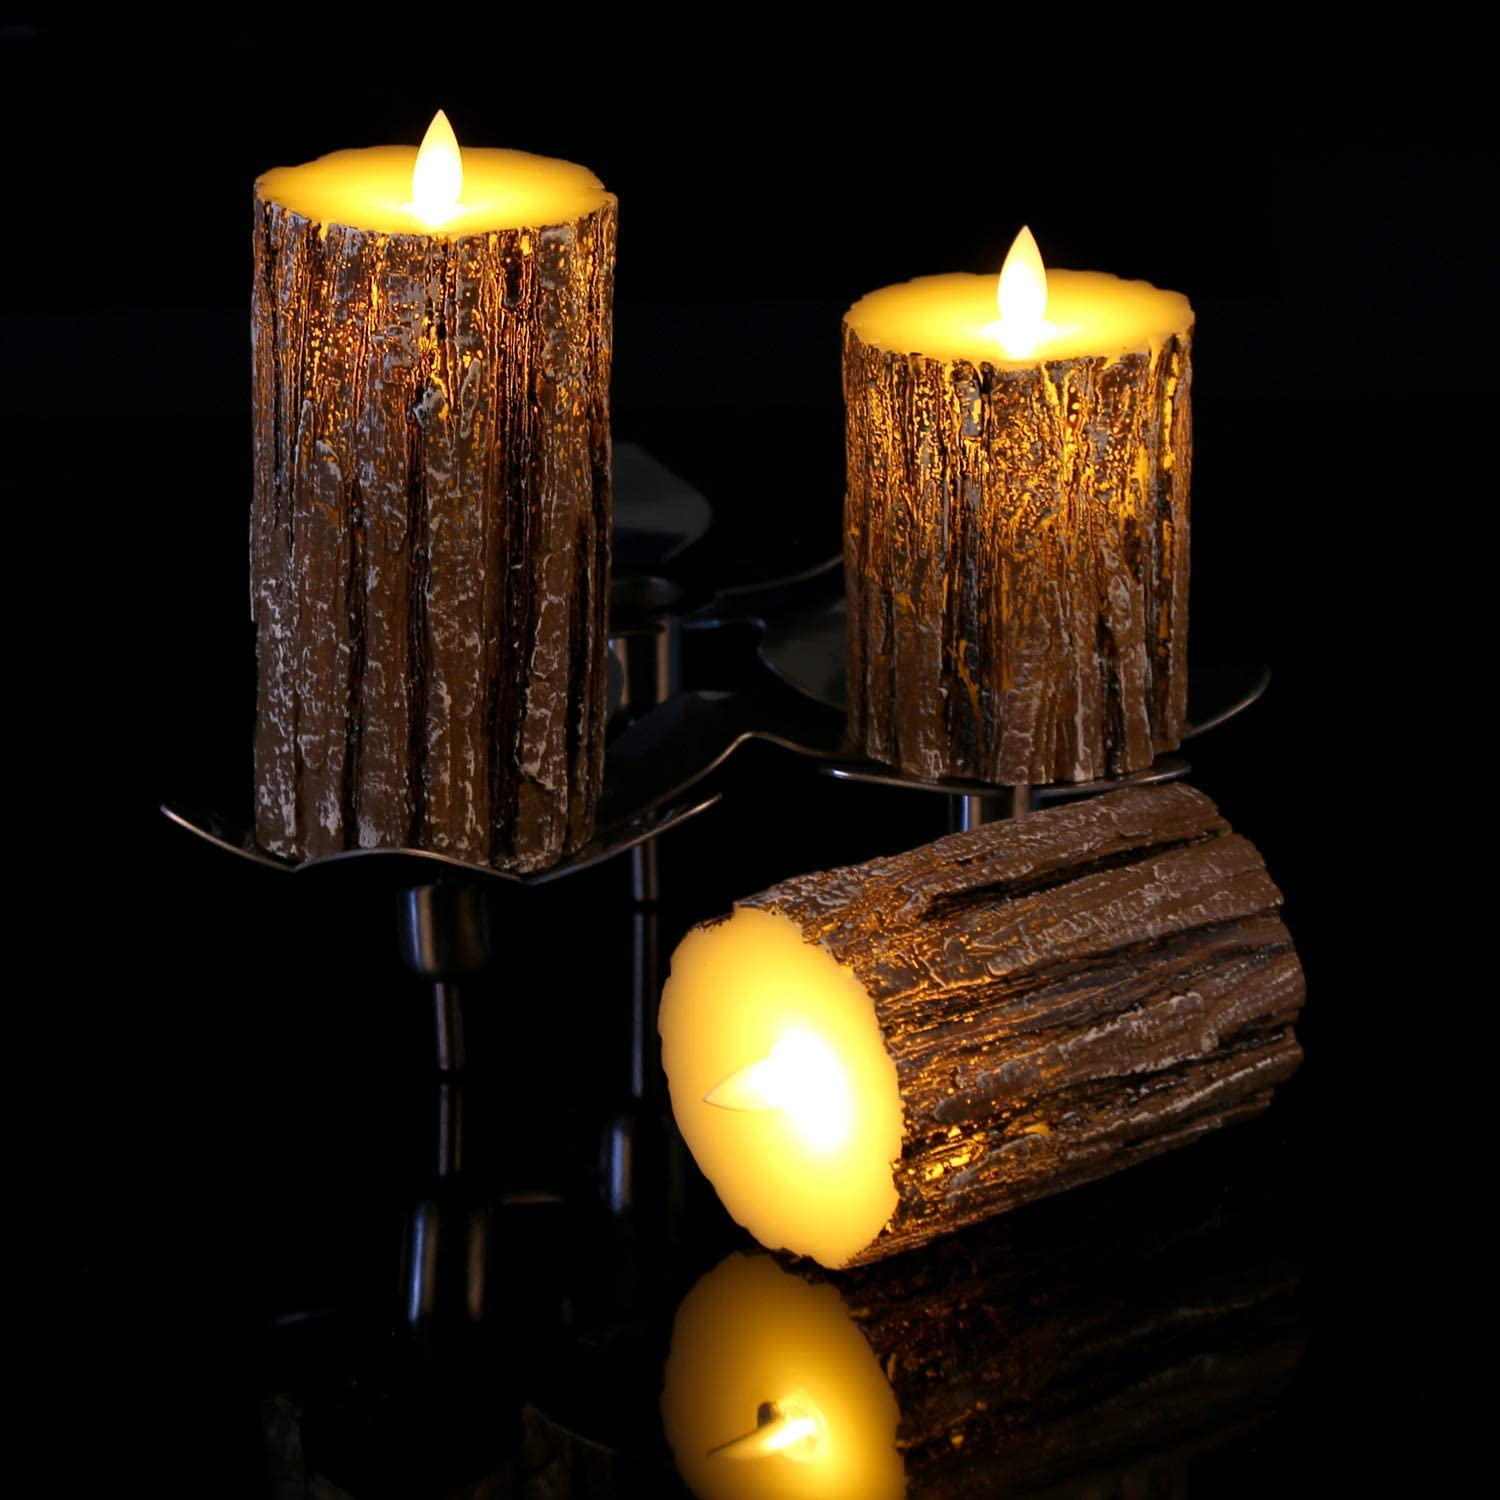 TOOGOO Flameless Candles Cedar-Bark Dripless Real Wax LED Pillars Include Realistic Flickering Flames and 10-Key Remote Control with 24-Hour Timer Function 400 Cedar Bark -3 Pack Hours